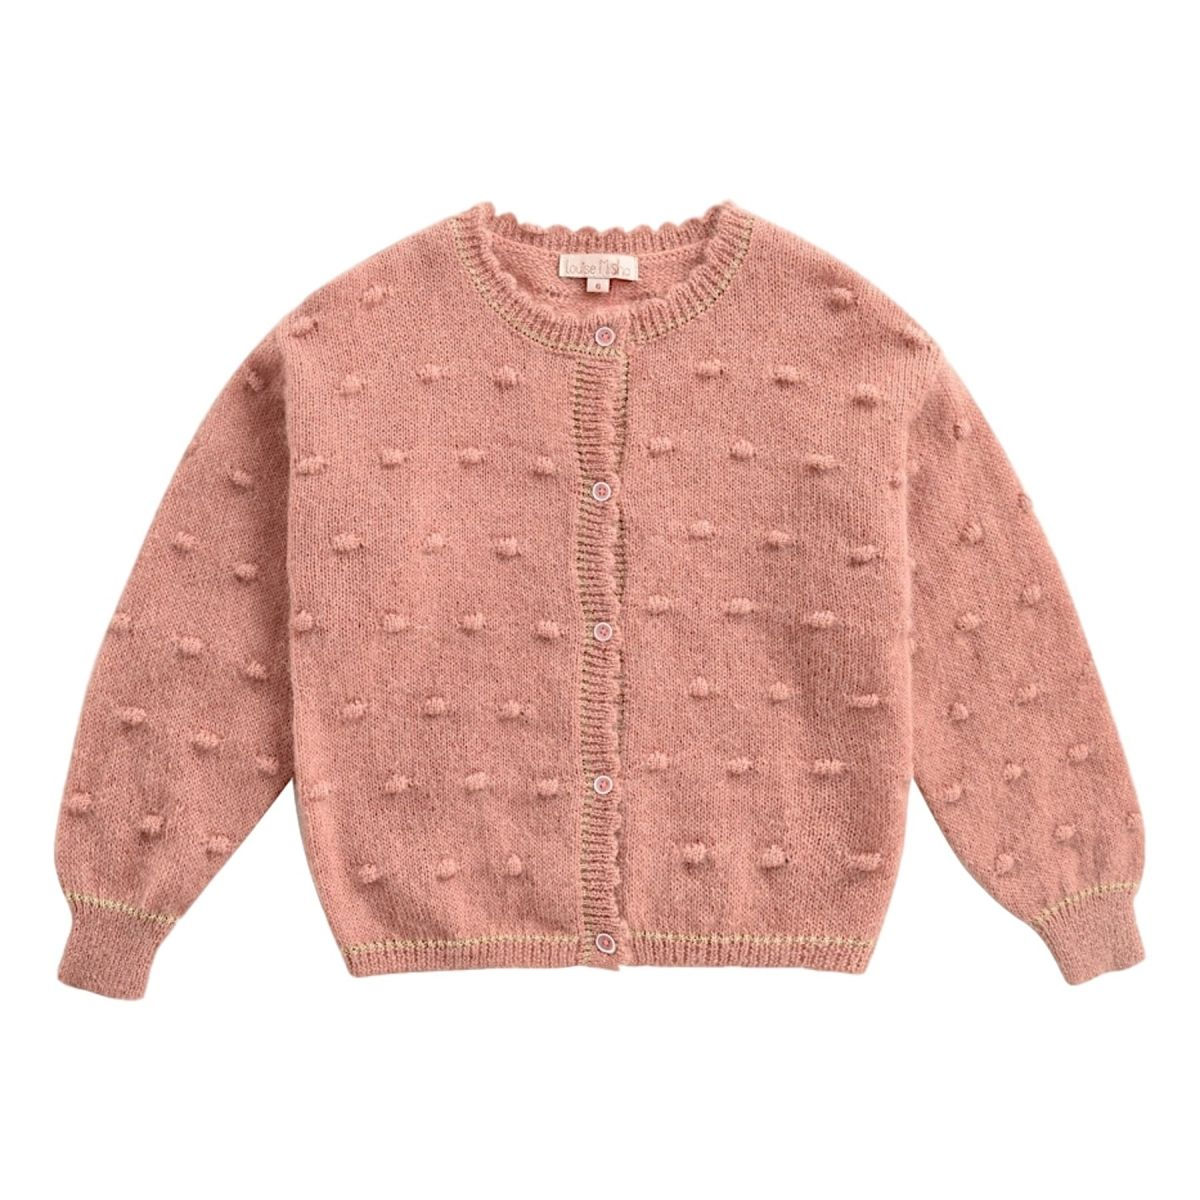 Louise Misha - Cardigan Lunata rose - 1